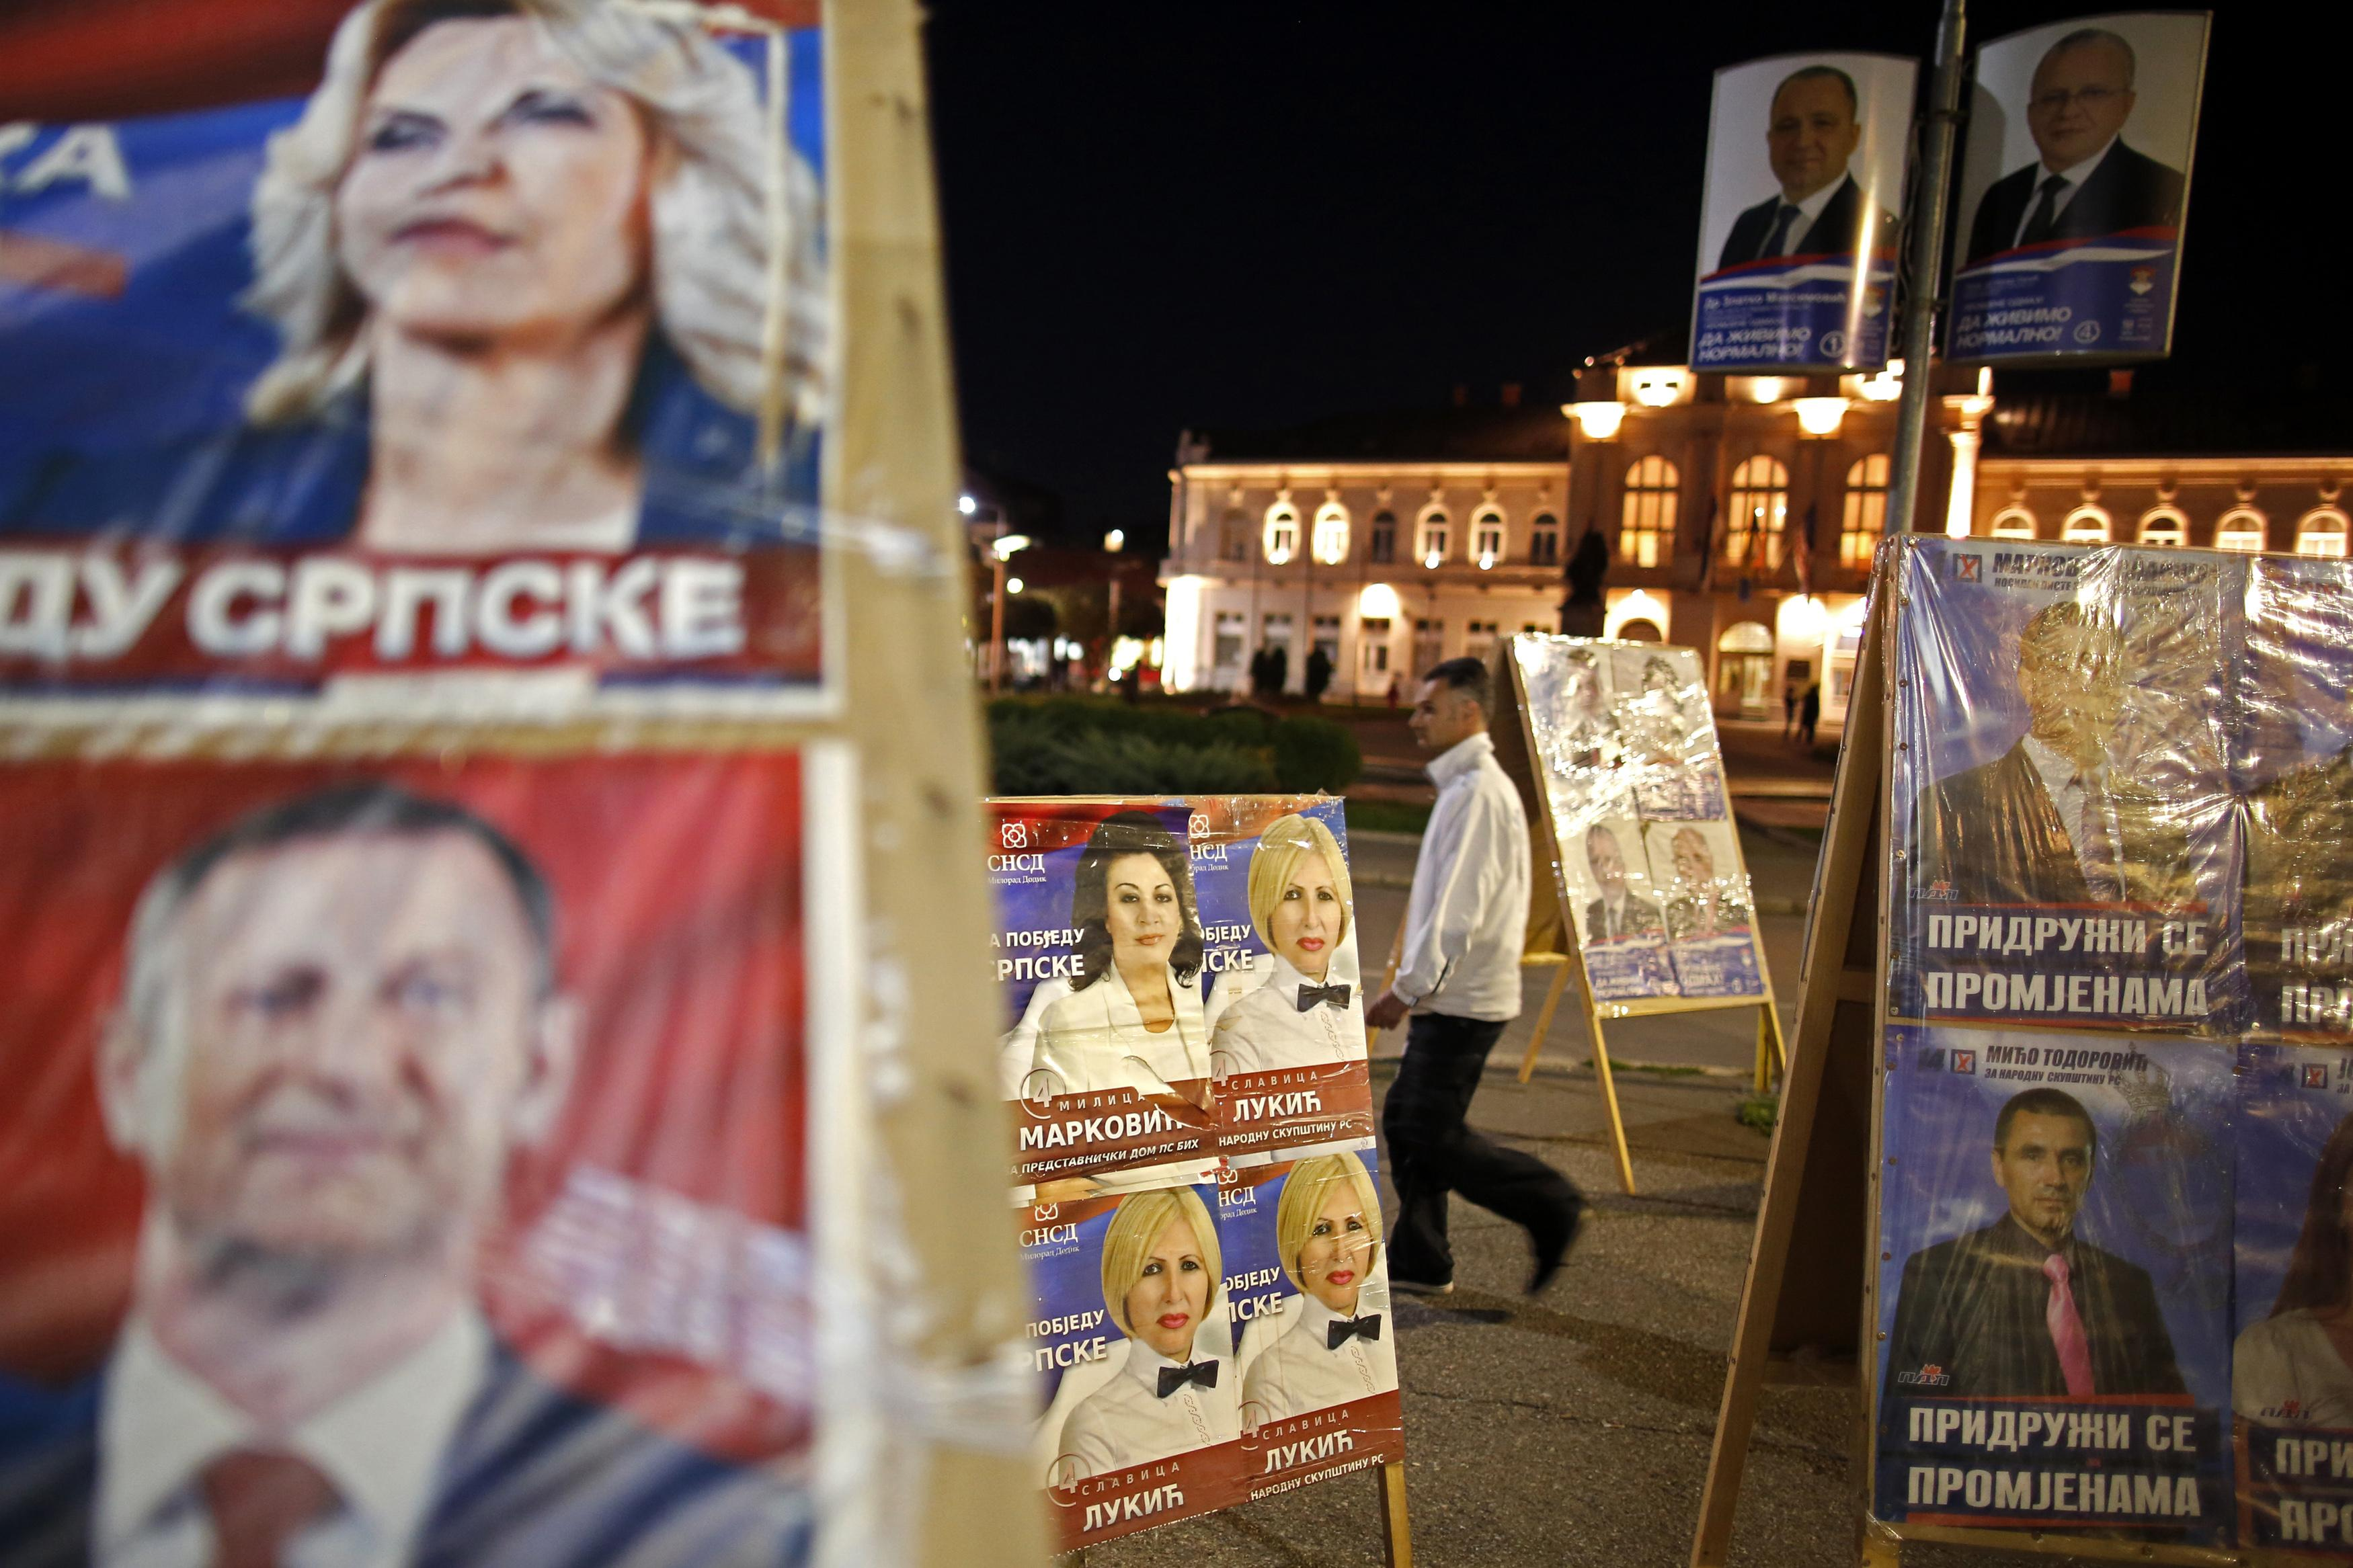 A Serb man walks past election posters in Bijeljina October 9, 2014. Bosnia's 3.3 million voters will choose a new political elite across six layers of government on Sunday in an election that, had it happened a few months ago, might have been a catalyst